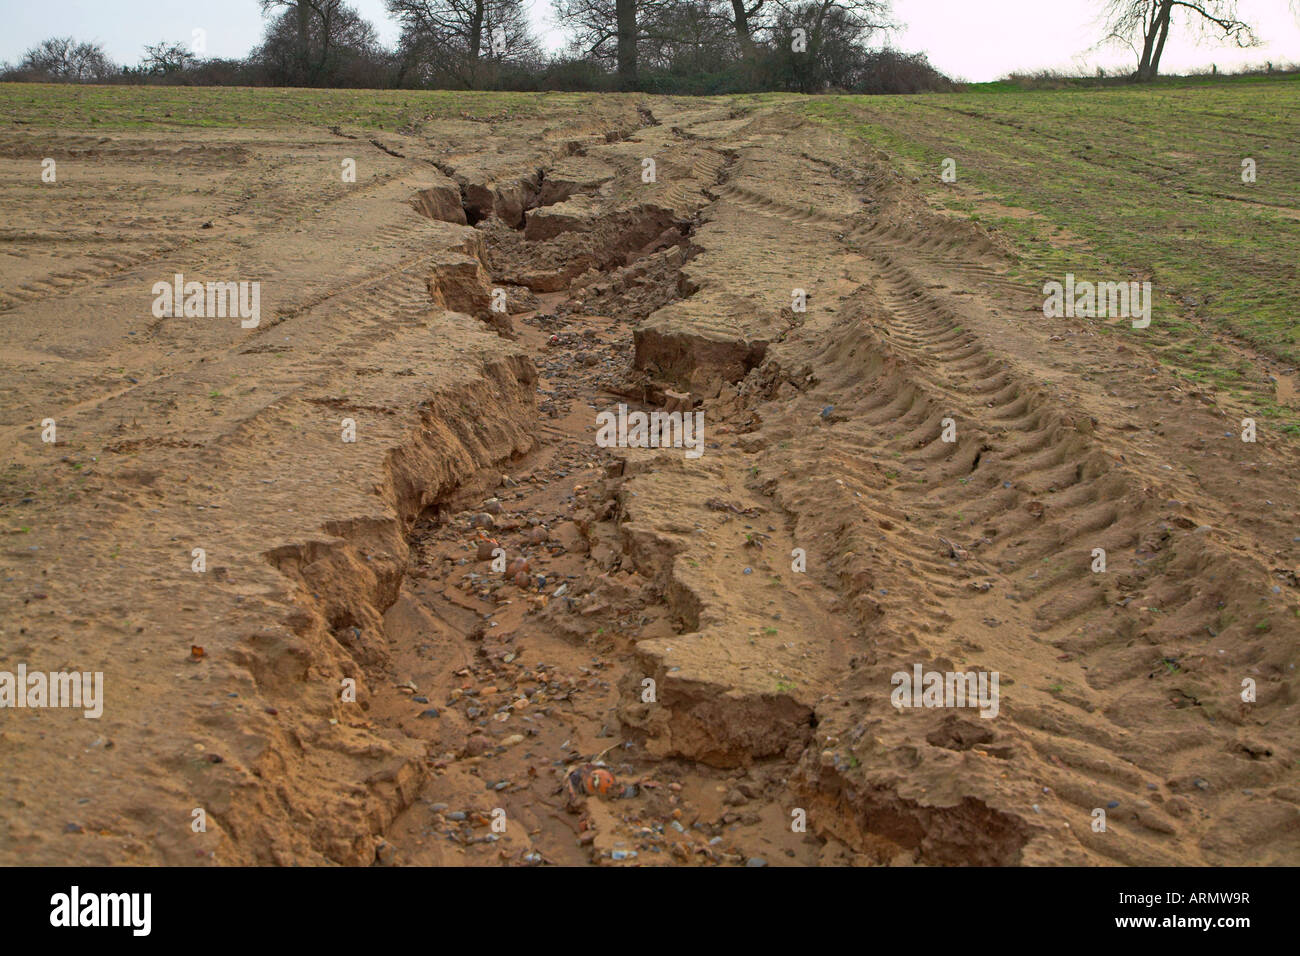 Soil erosion gulleying caused by heavy rain and downhill for Soil erosion causes